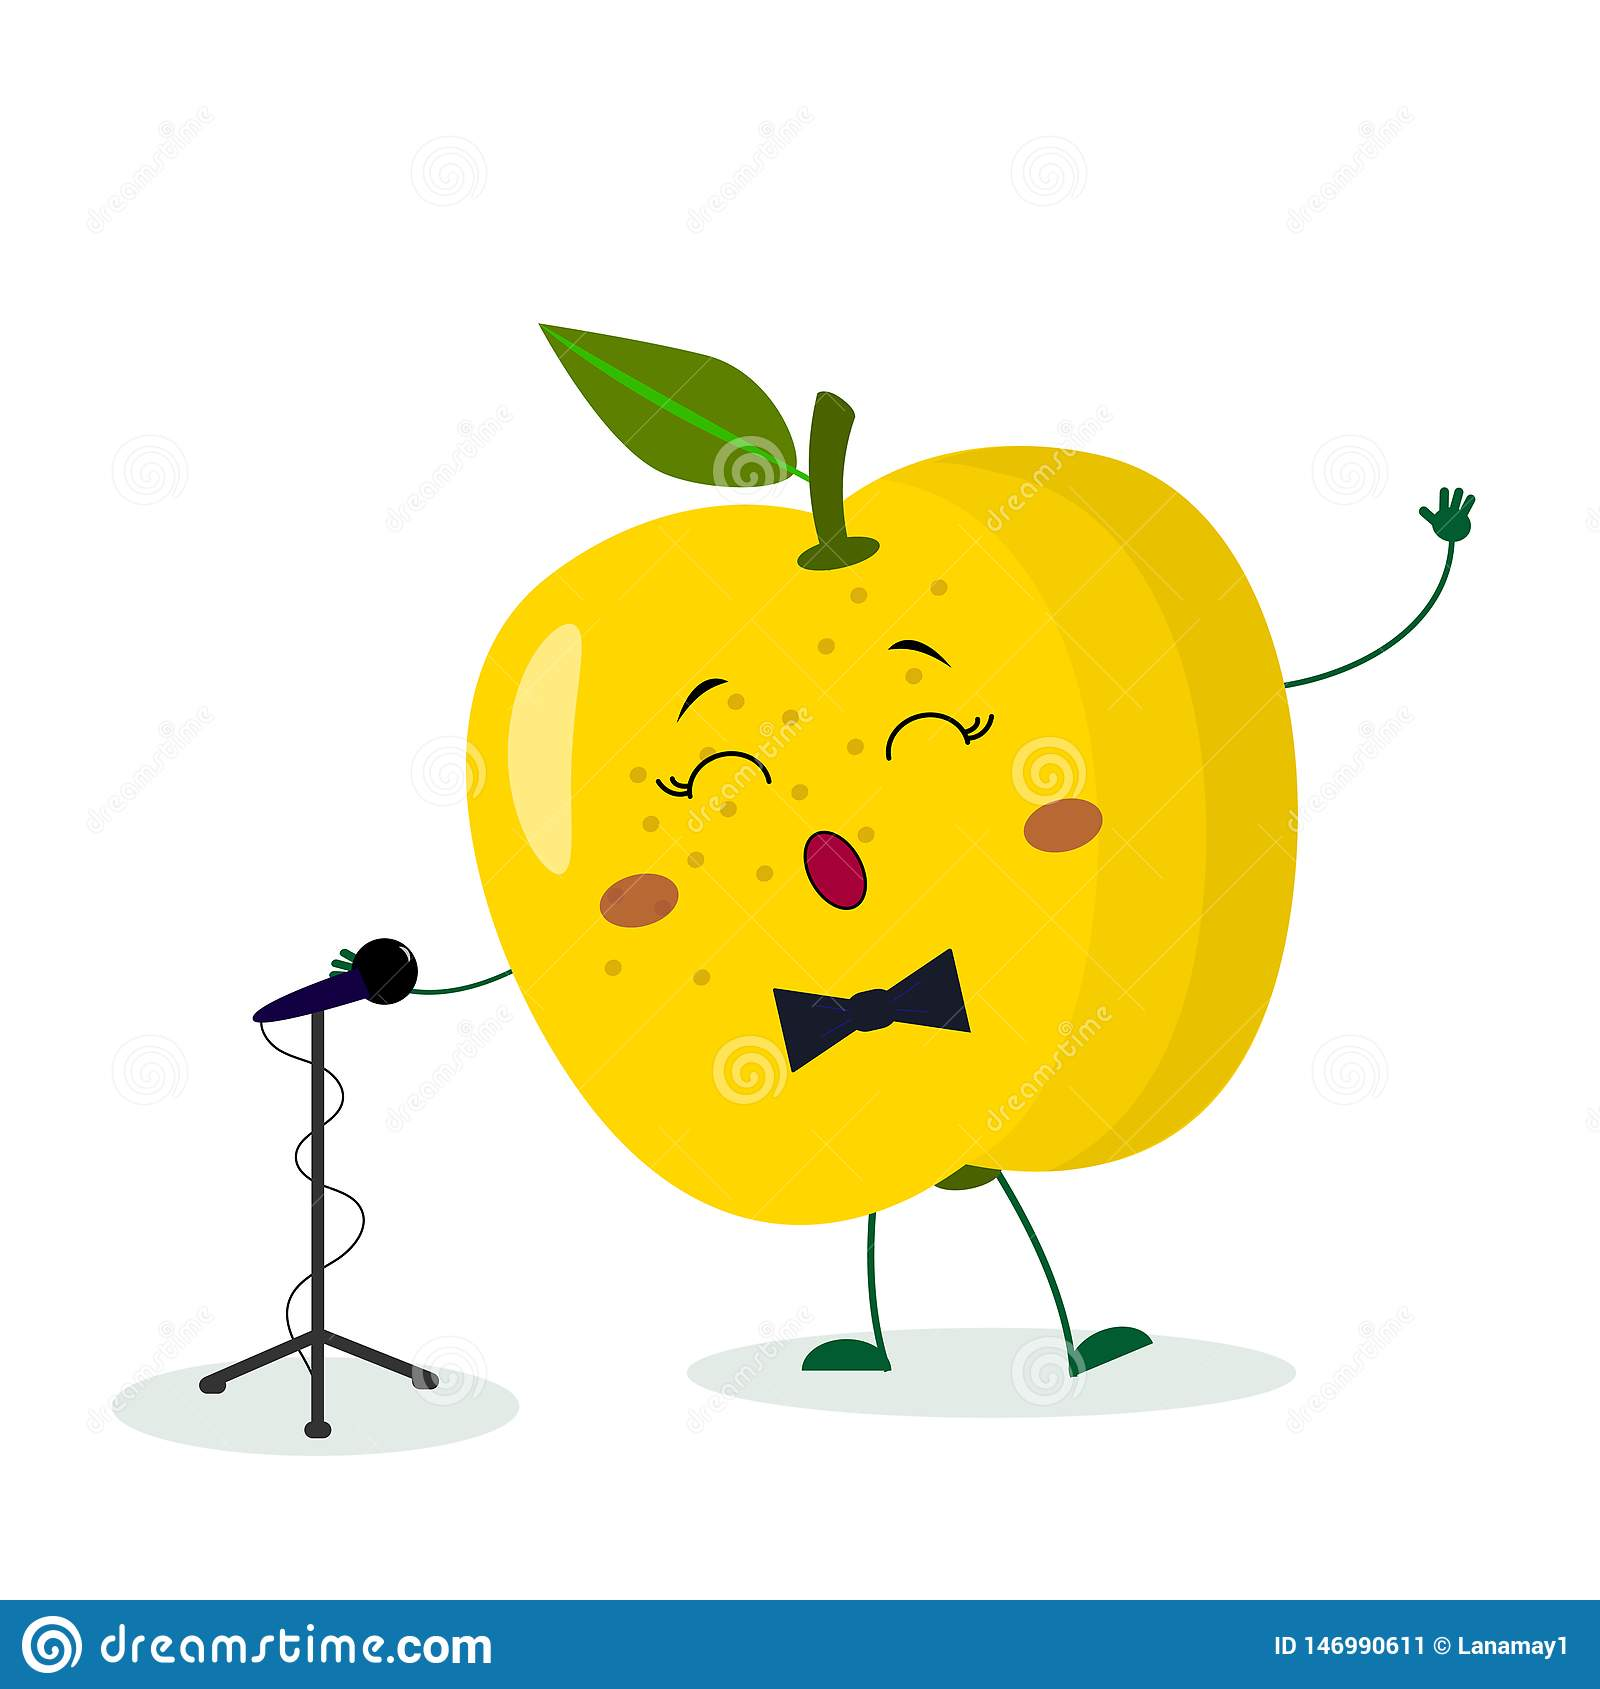 Kawai Cute Fruit Yellow Apple Singer With A Bow Tie Sings